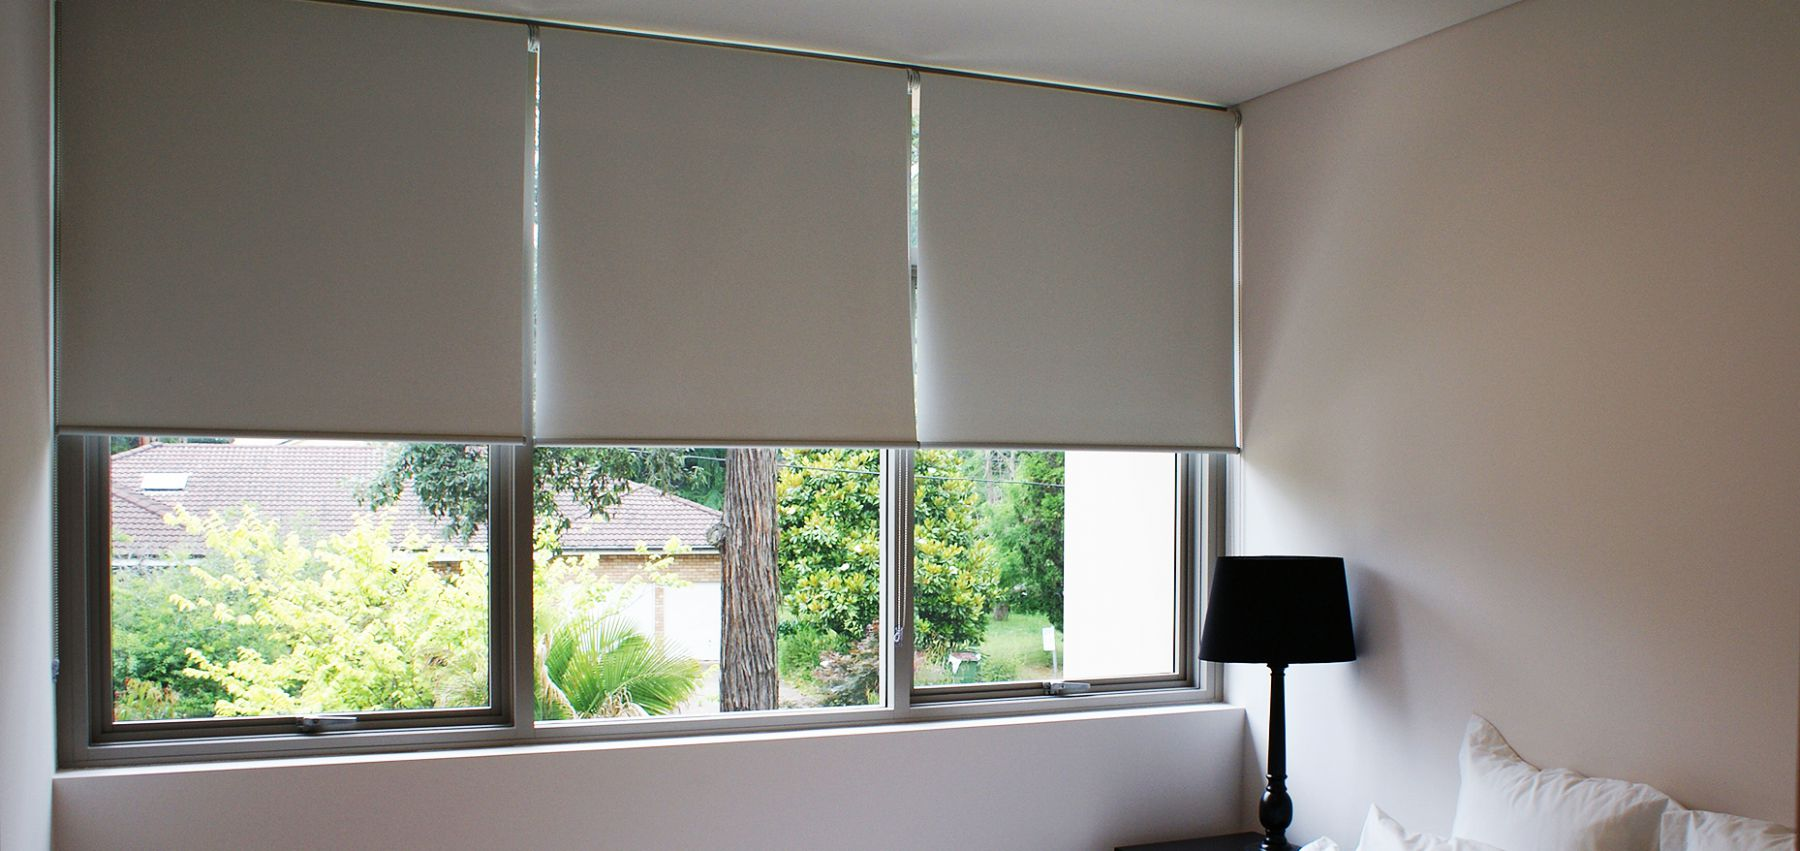 or is be and blinds a funky wearing corporate can functional funkyy coast way offbeat sydney the property both settings central holder in au roller humble practical that for windows testing errand blind